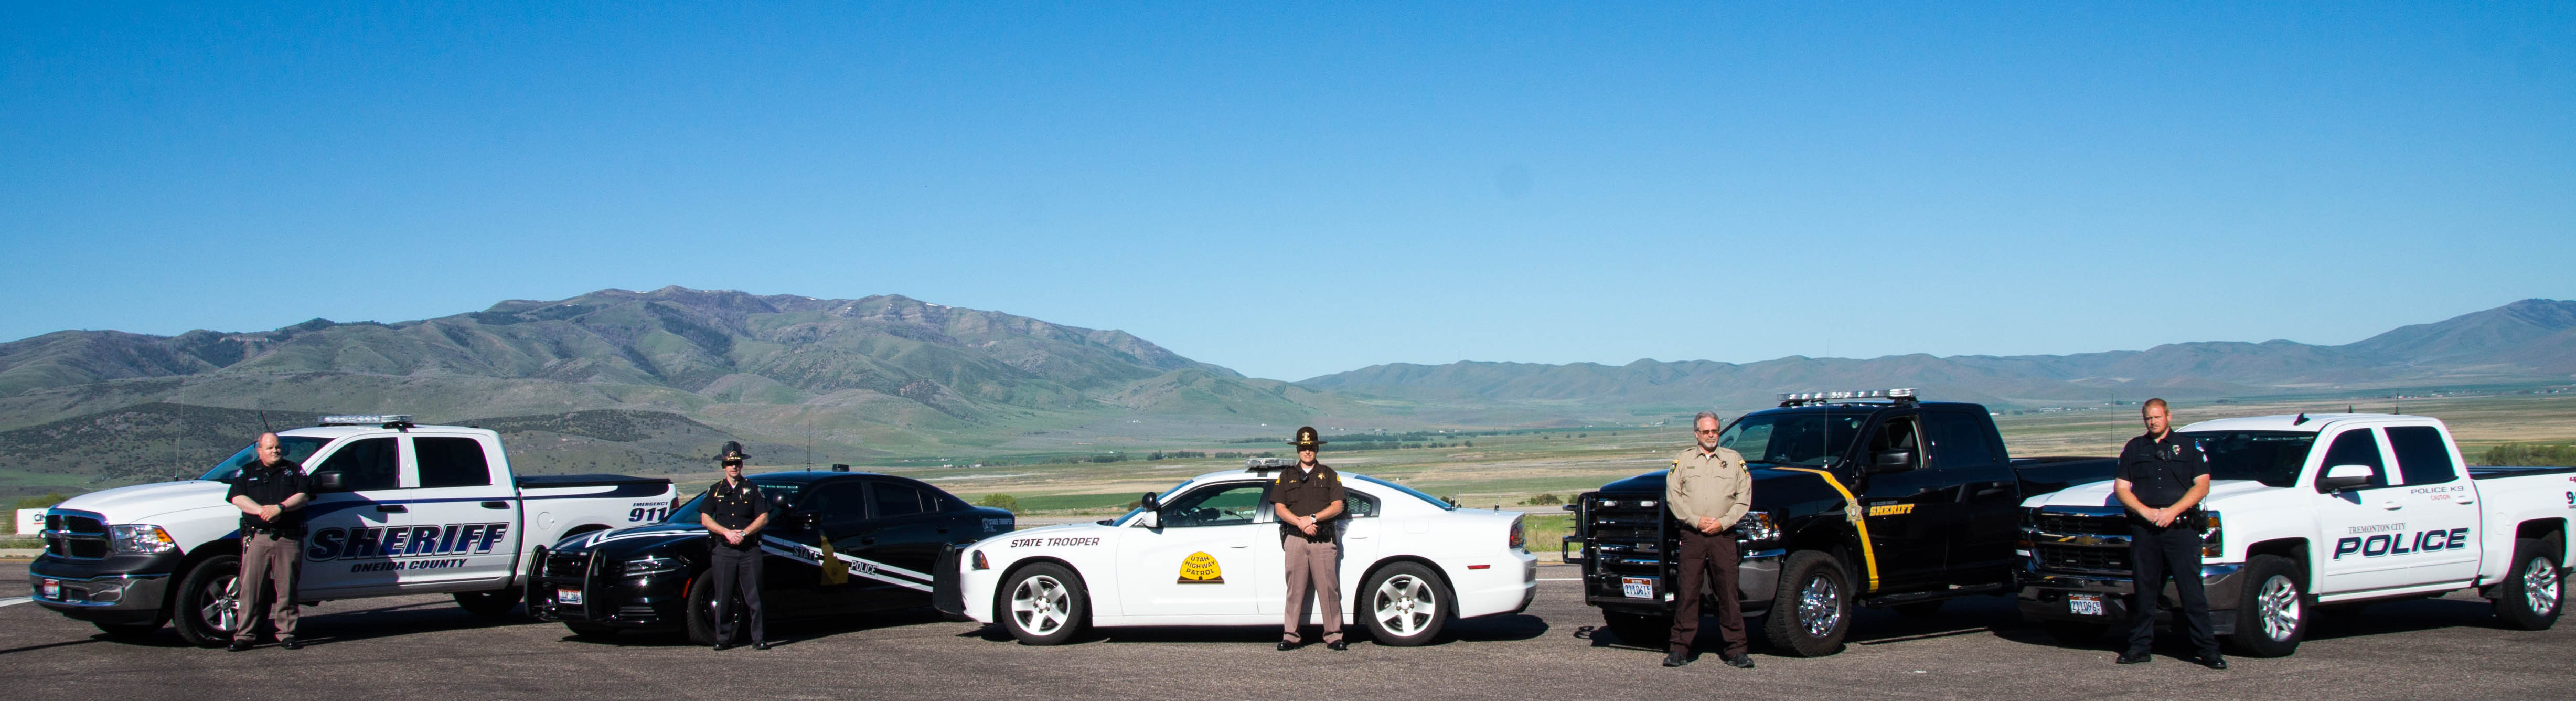 Officers from Oneida County Sheriff's Office, Idaho State Police, Utah Highway Patrol, Box Elder County SHeriff's Office and Tremonton Police Department stand by their vehicles.